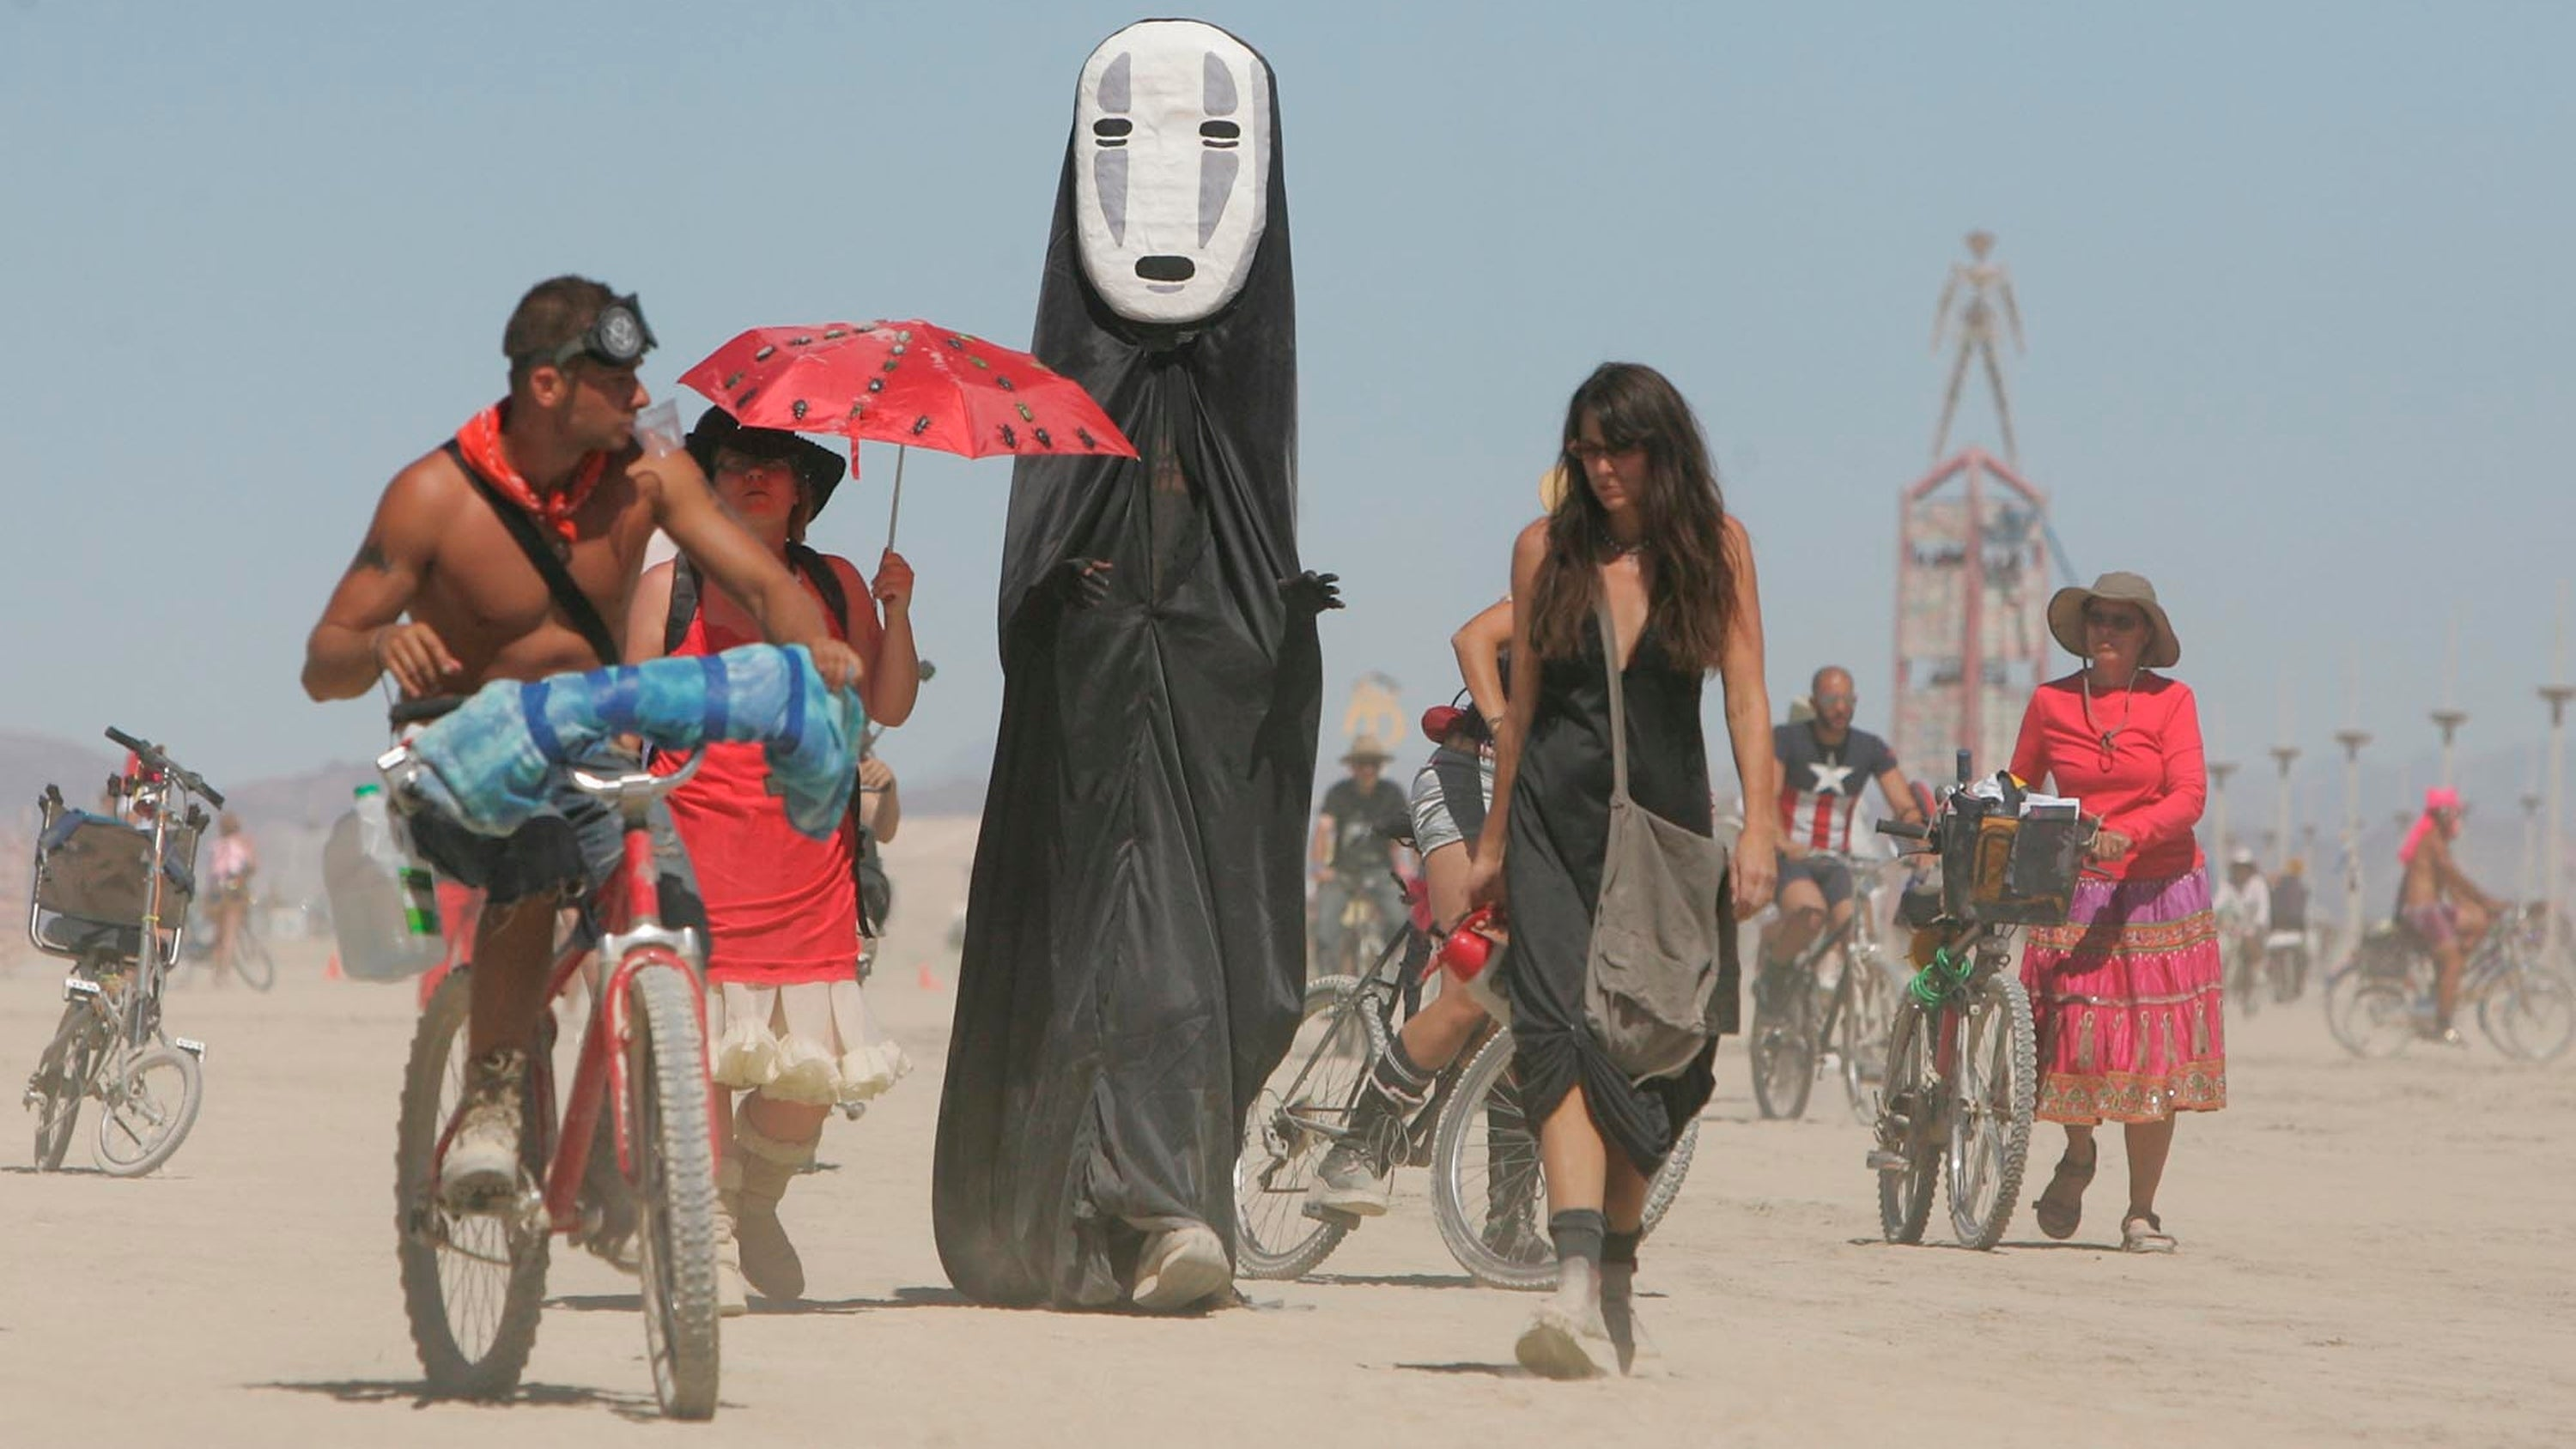 Fire, Dust Storms, And Scorching Heat: This Year's Burning Man Sounds Like The End Of Days